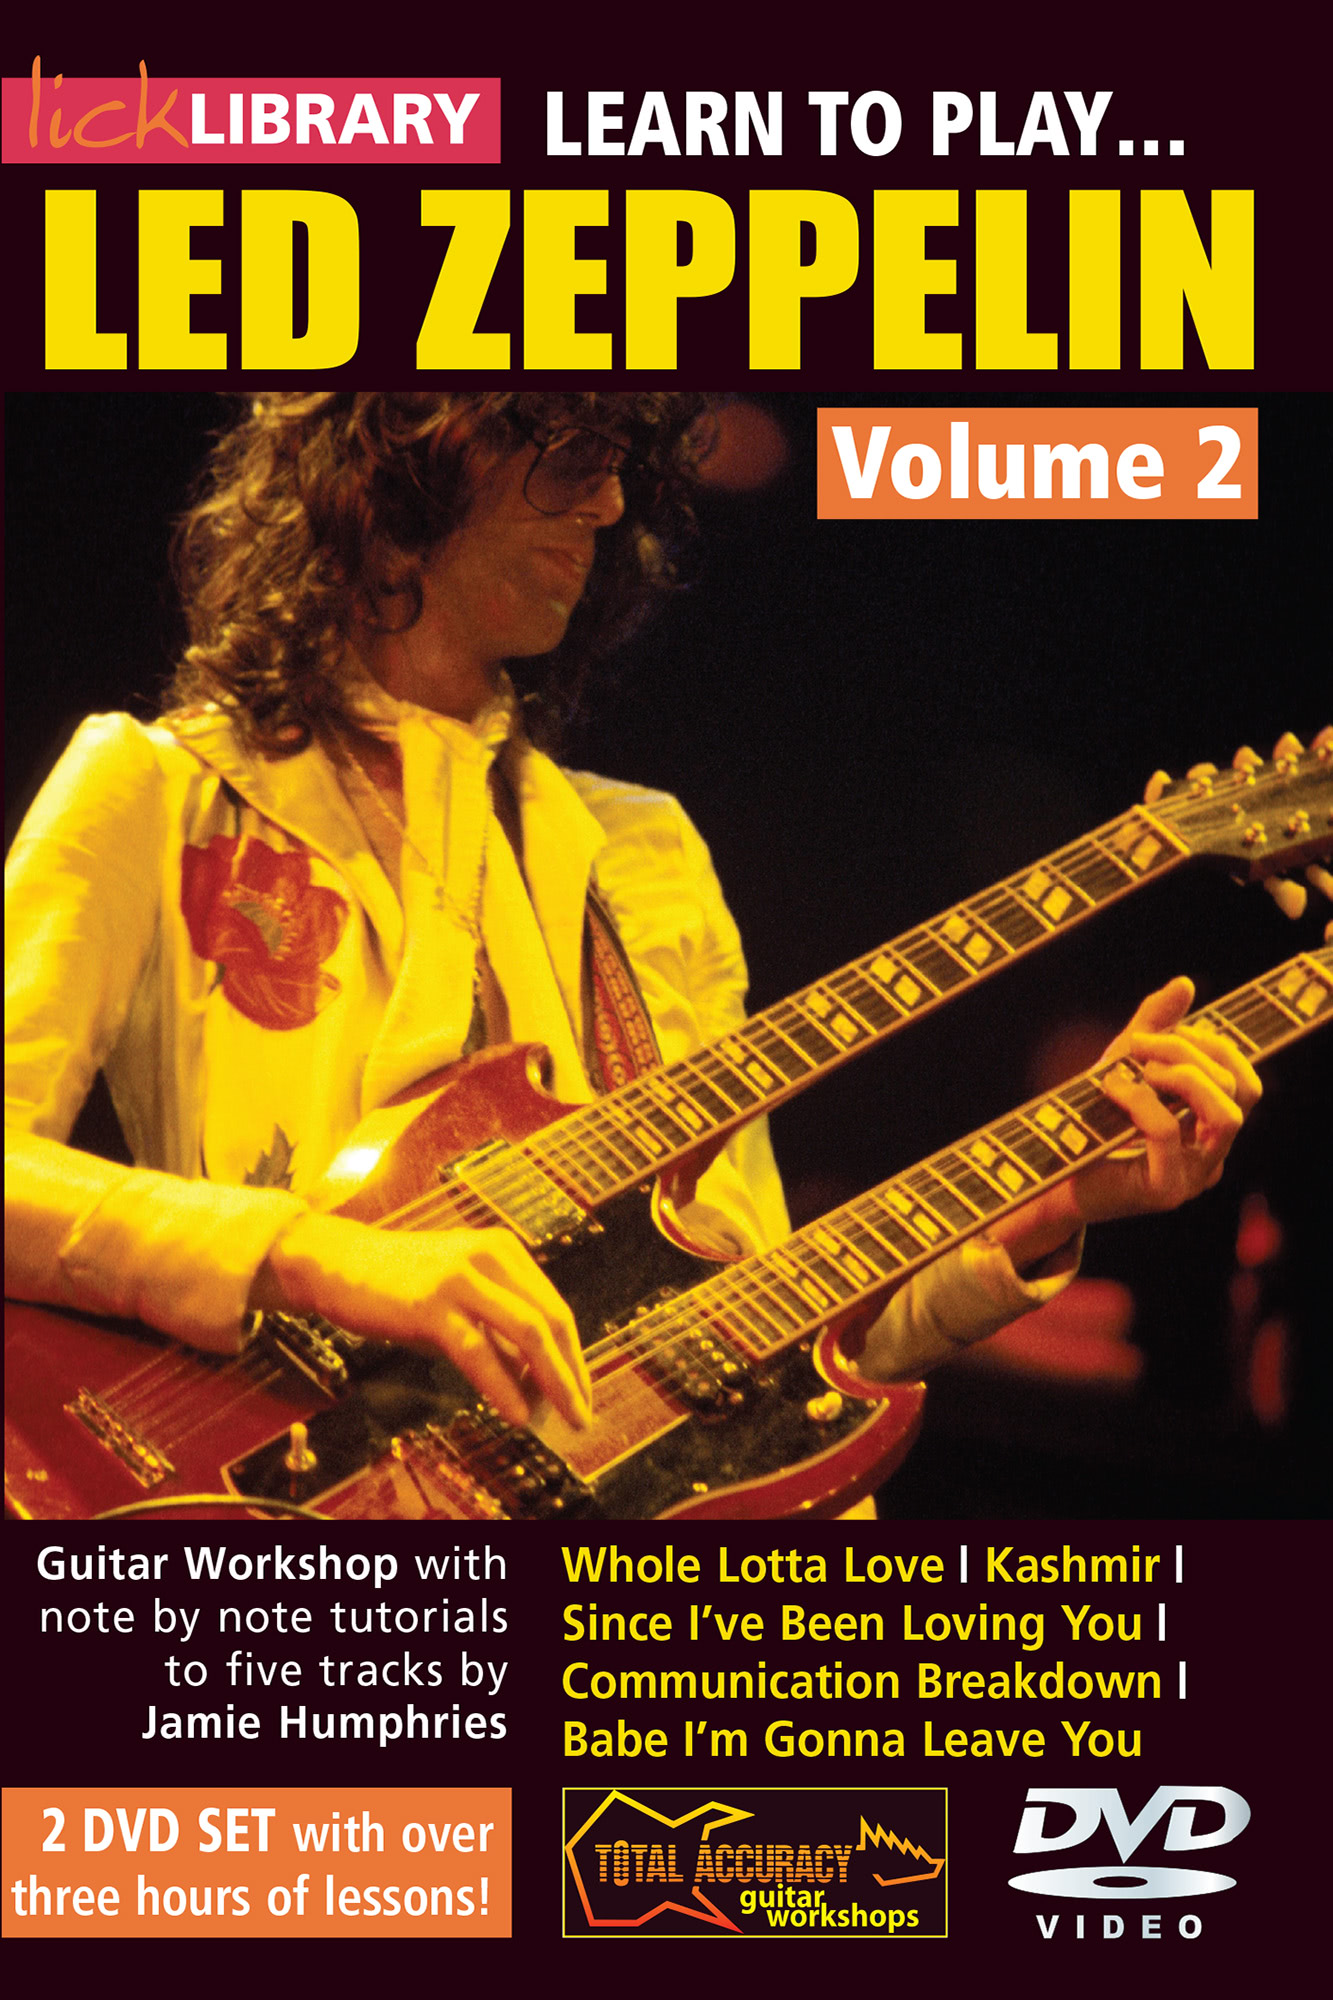 Learn To Play Led Zeppelin Volume 2